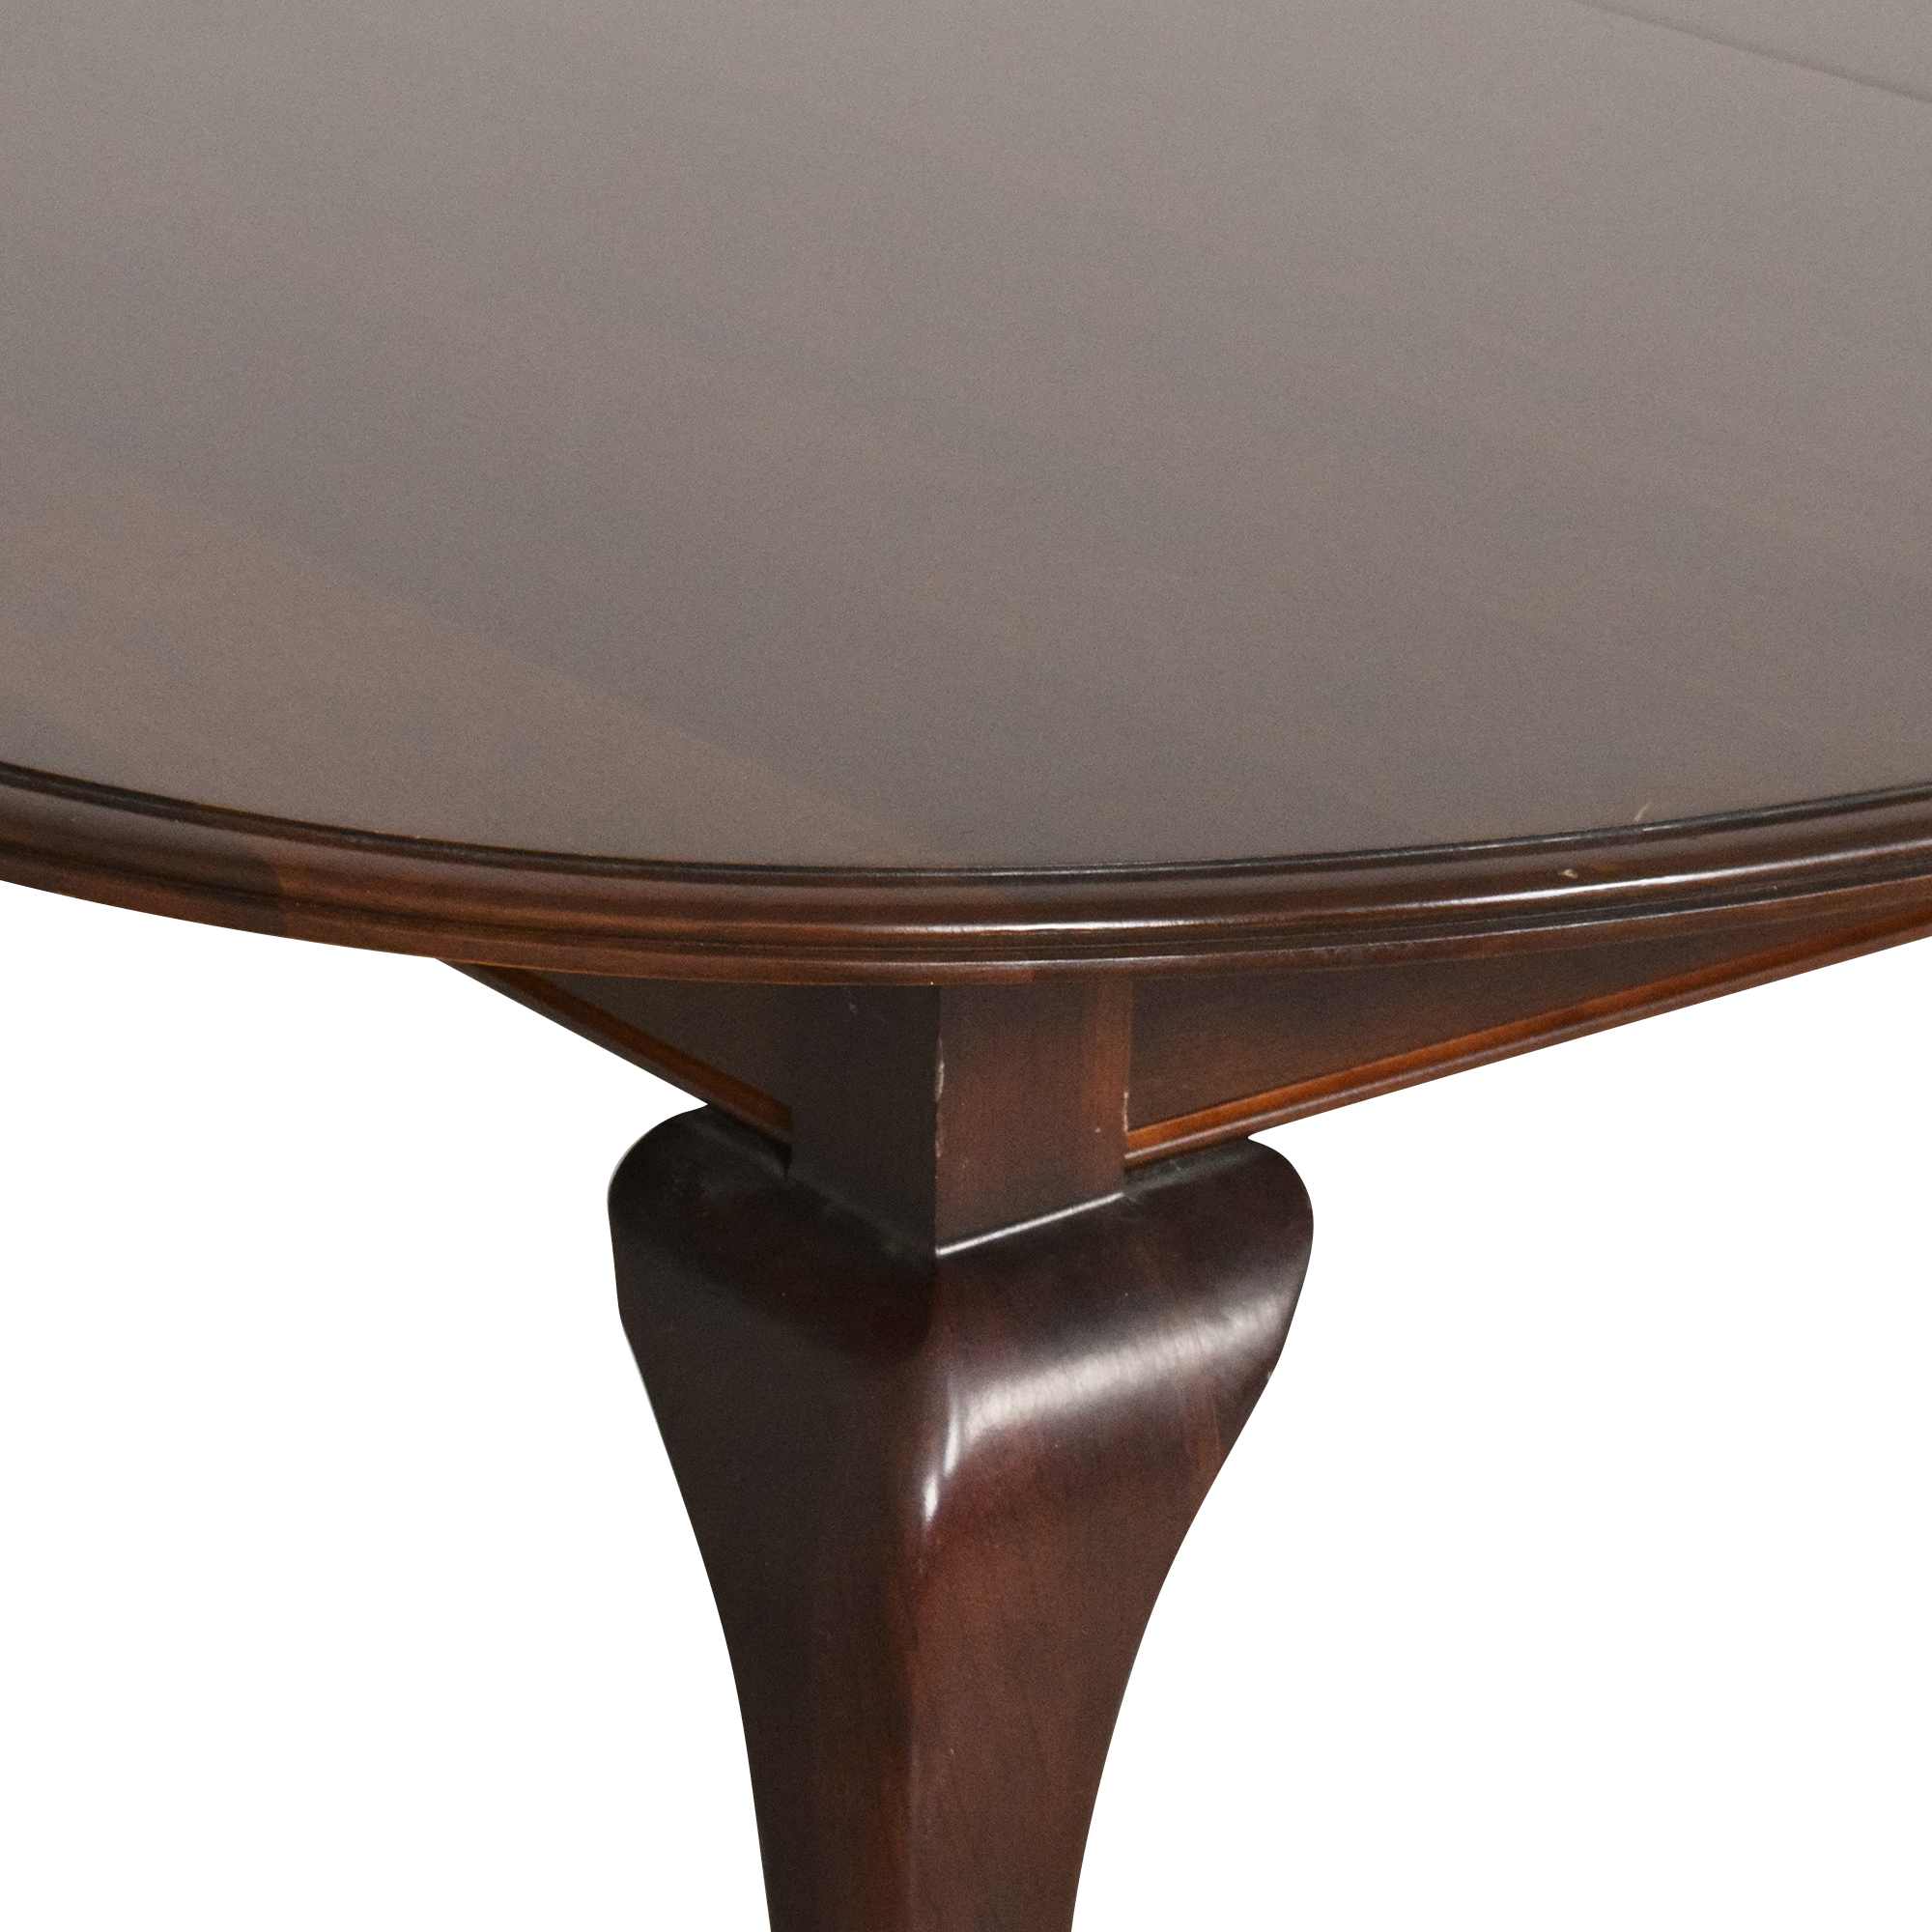 Ethan Allen Ethan Allen Georgian Court Oval Extendable Dining Table nyc